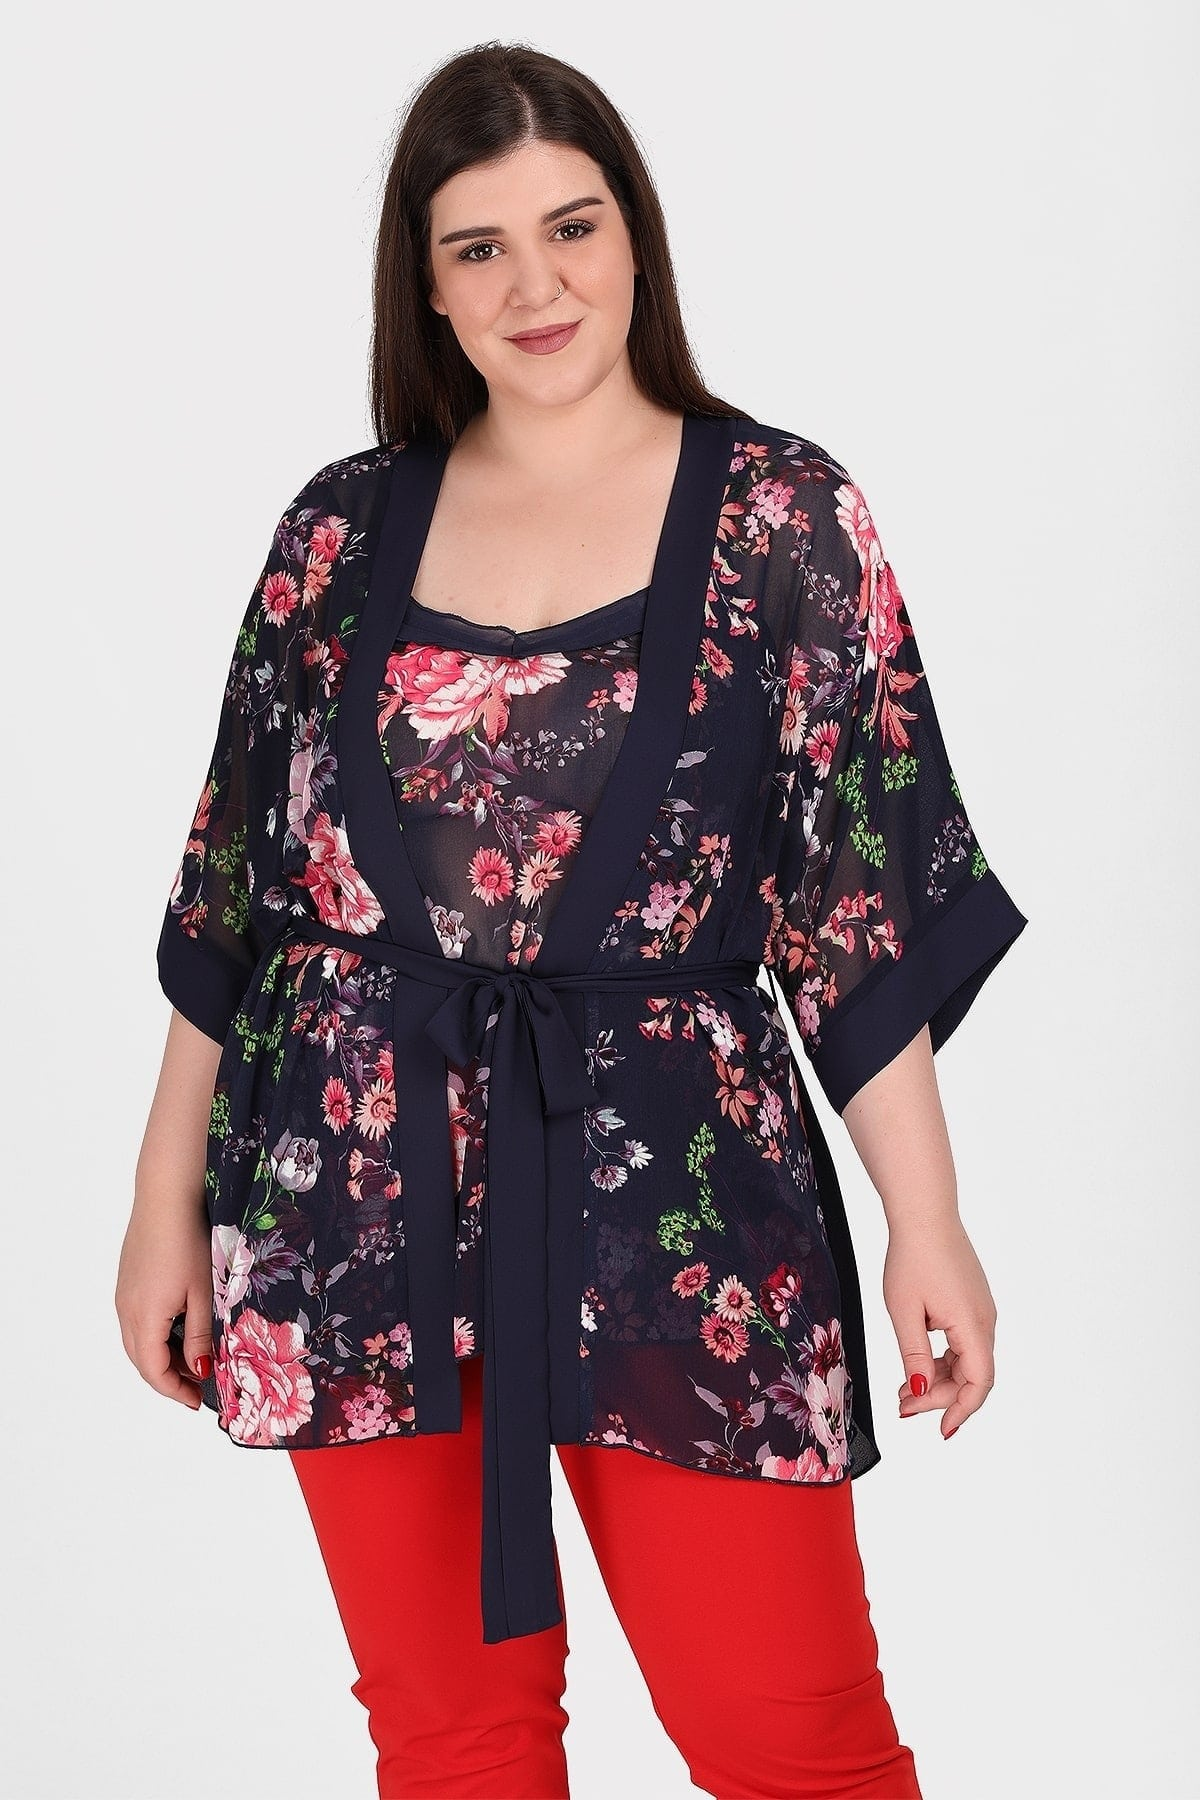 Formal set of kimono and top in floral print